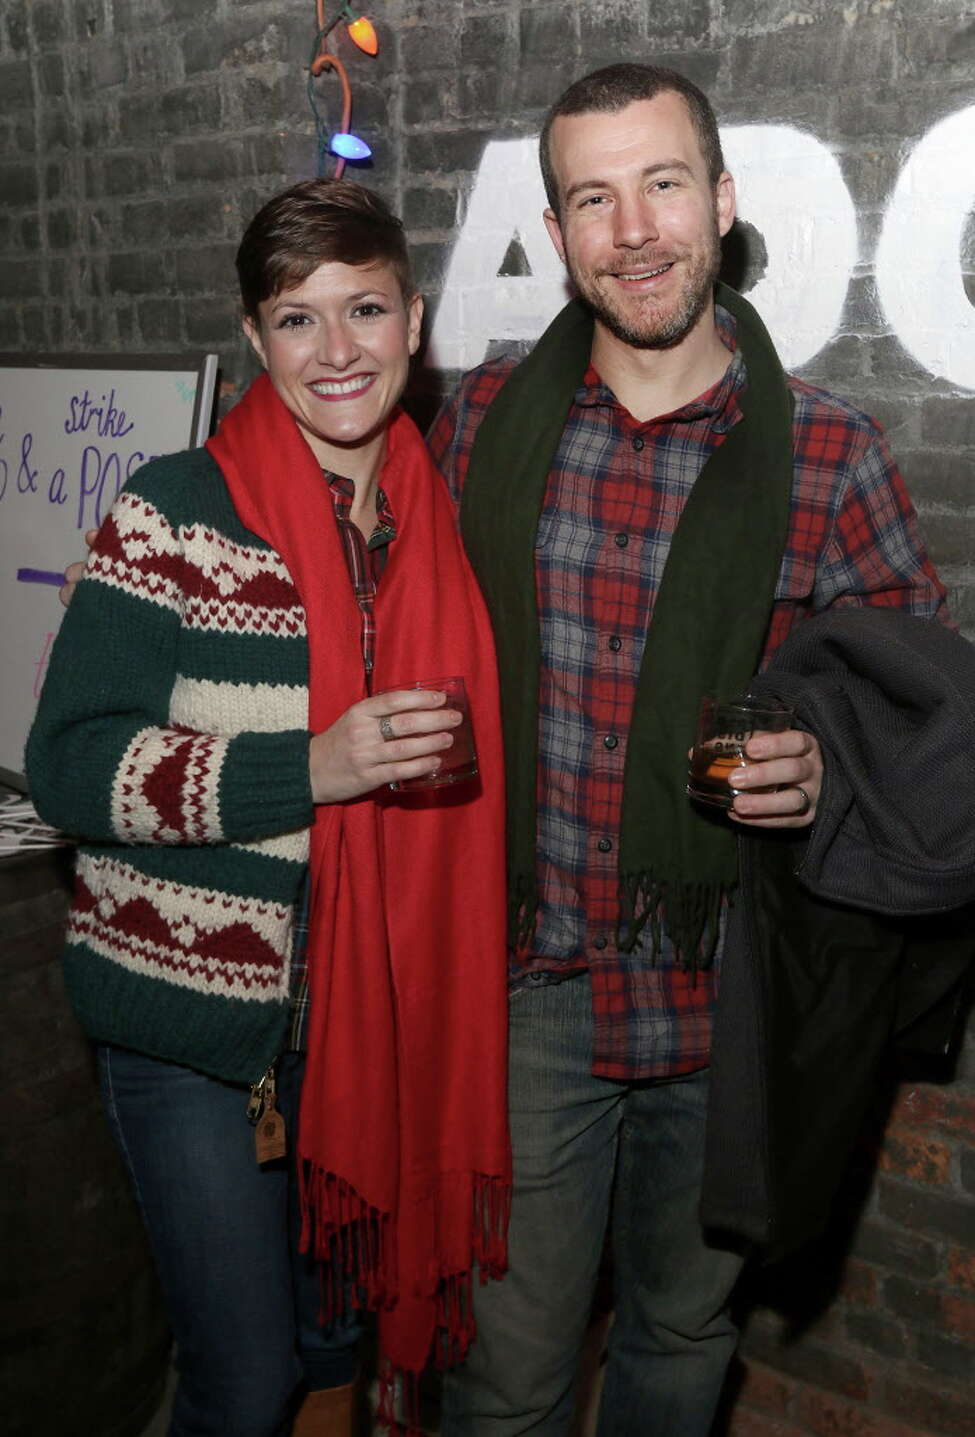 Albany, NY - December 17, 2016 - (Photo by Joe Putrock/Special to the Times Union) - Elizabeth Siegel(left) and Bryce Therrien(right) during the Albany Distilling Co.'s fourth annual-ish holiday party held at the distillery in downtown Albany. ORG XMIT: 08